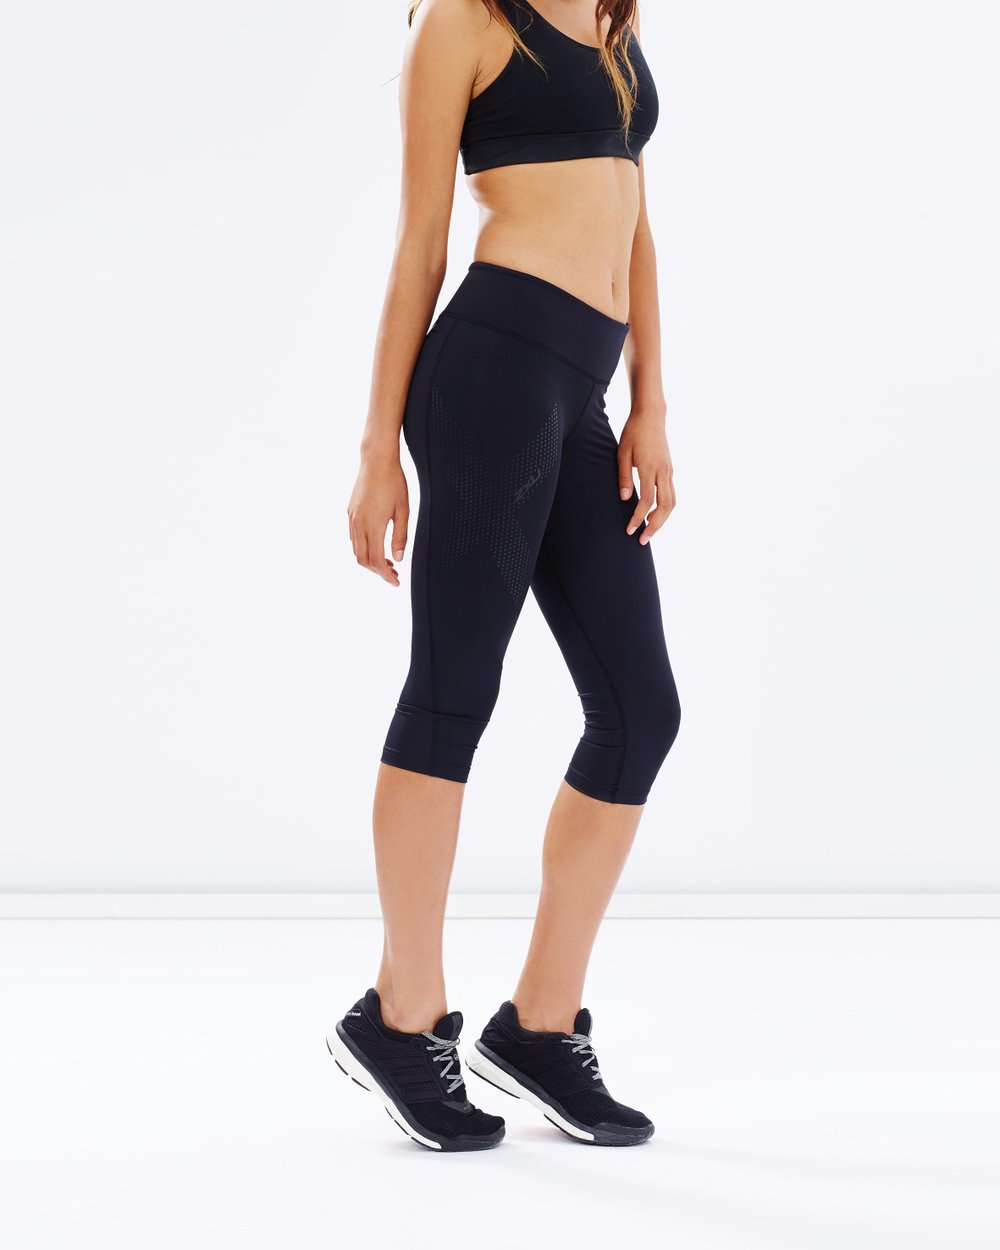 c673c370663e4 Women's Mid-Rise 3/4 Compression Tights by 2XU Online | THE ICONIC |  Australia